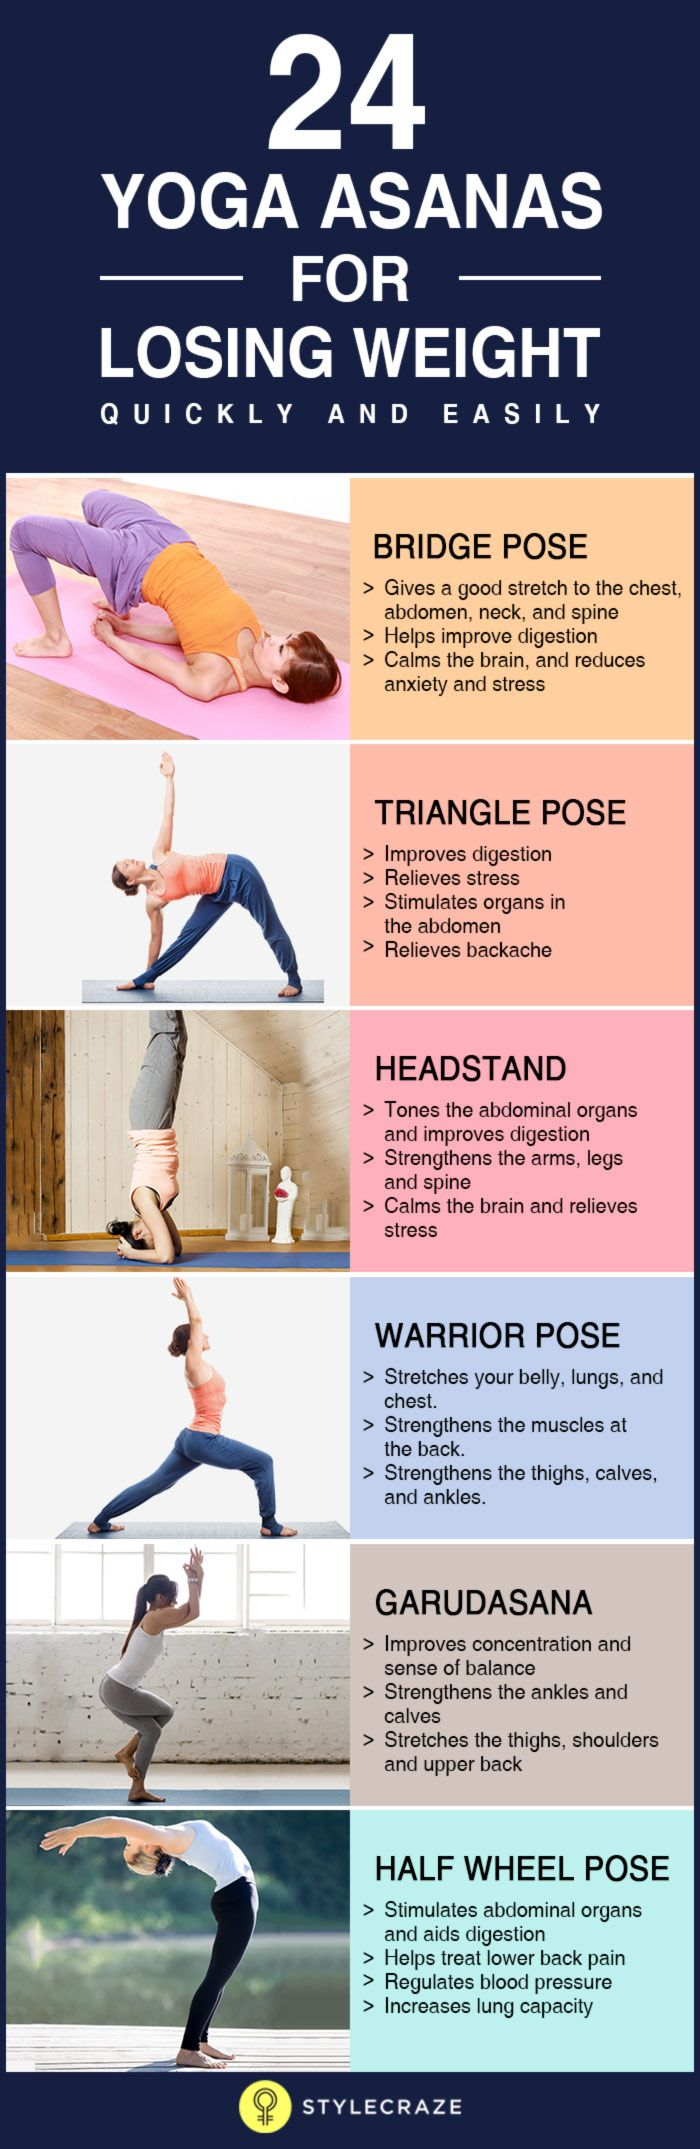 Yoga Poses Workouts For Beginners Stylecrazeco